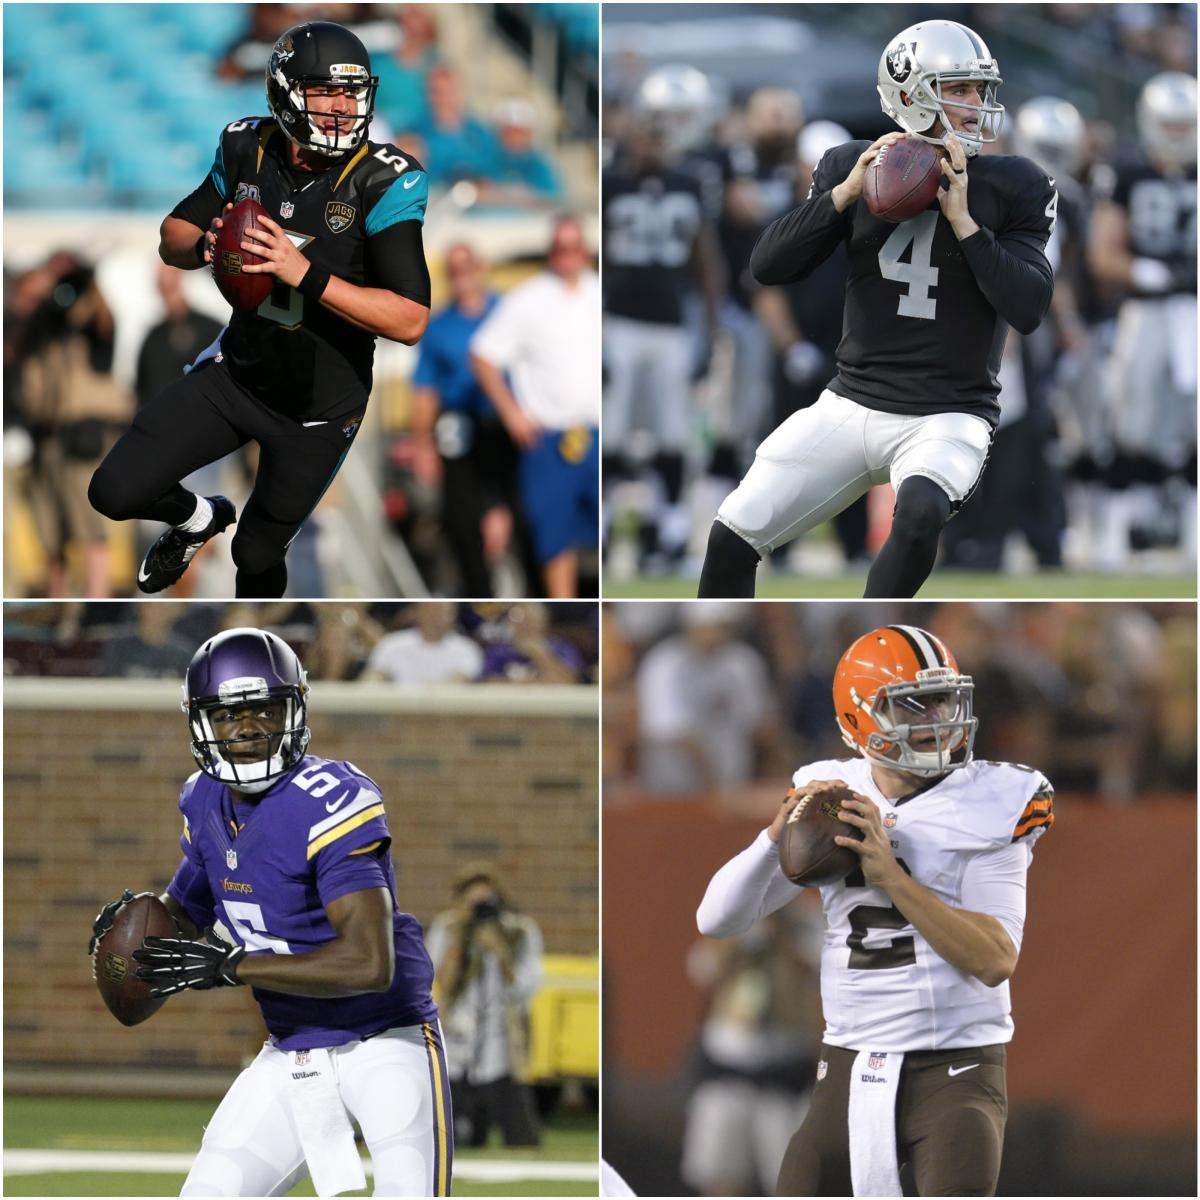 RT @nflnetwork: Which rookie QB should start first: #Bortles #Carr #Bridgewater or #Manziel? http://t.co/PQpTfNa1co